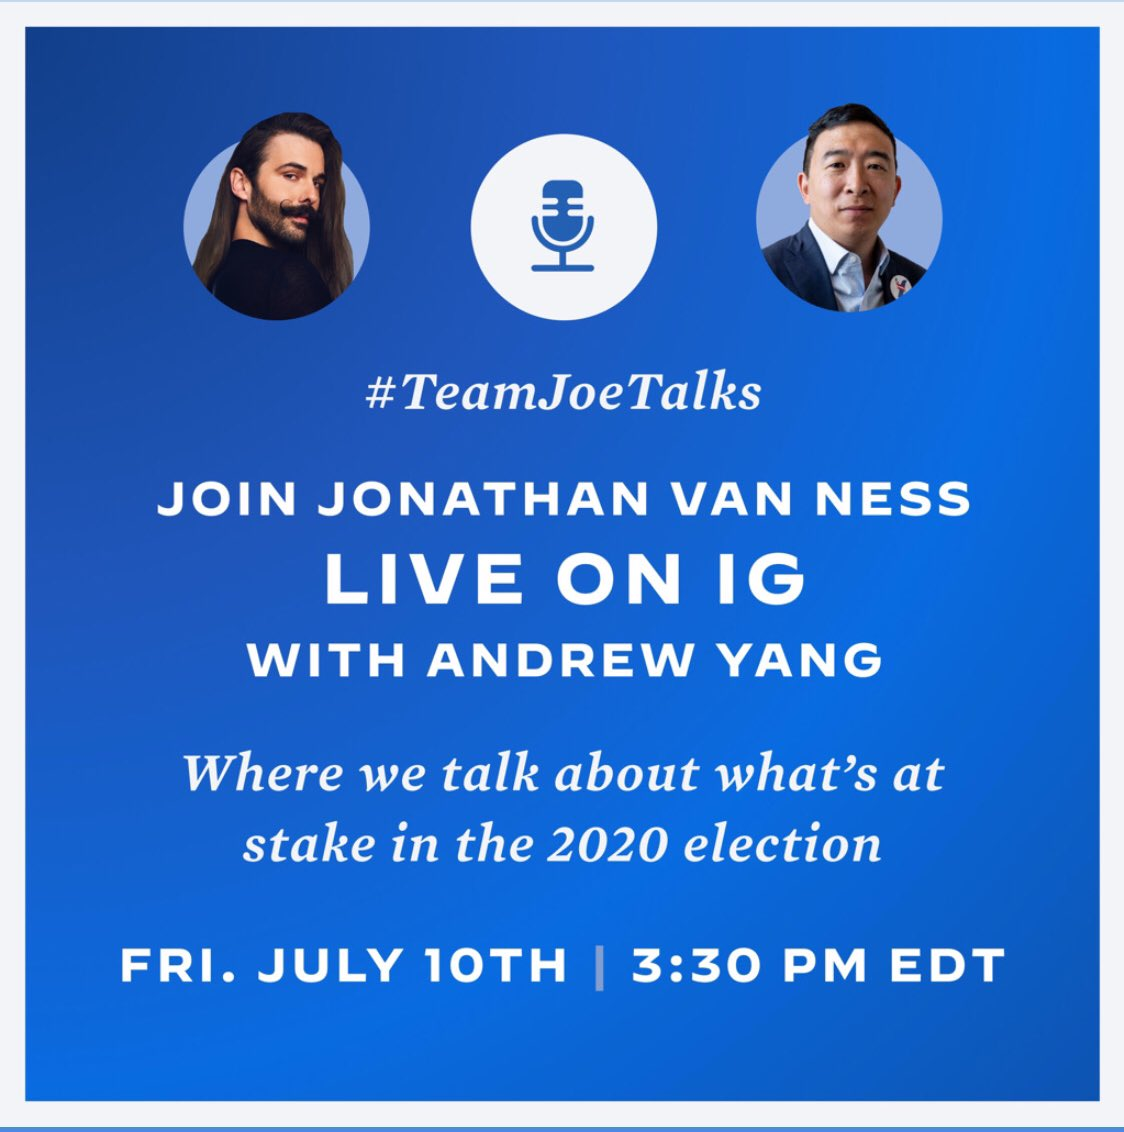 Excited to sit down with @jvn today at 3:30 PM EDT on @instagram live to talk about what is at stake in November. Almost voting time and our country needs better leadership. 👍🇺🇸 @JoeBiden #teamjoetalks https://t.co/uh45oYLgr2